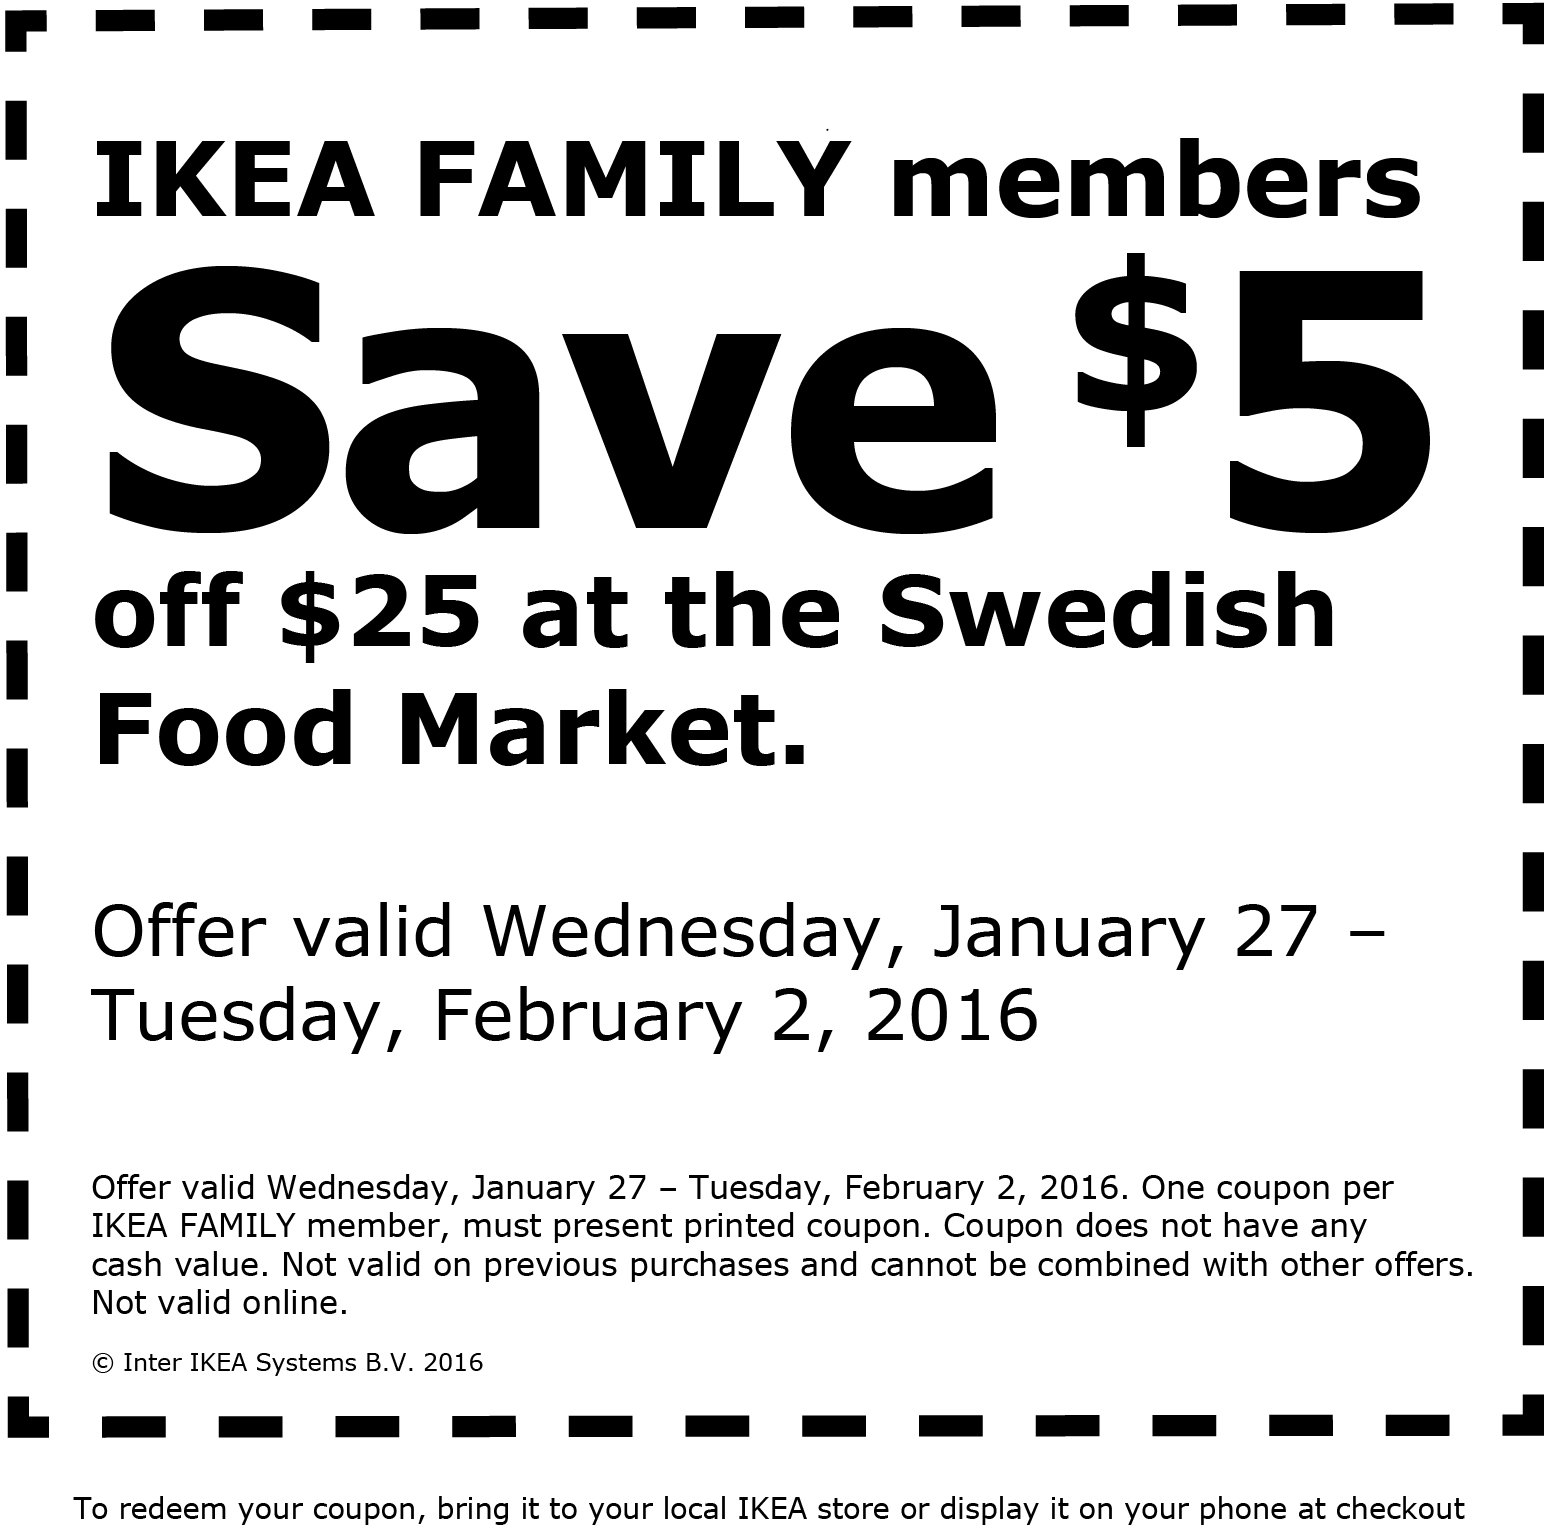 IKEA Coupon July 2017 $5 off $25 at the Swedish food market inside IKEA